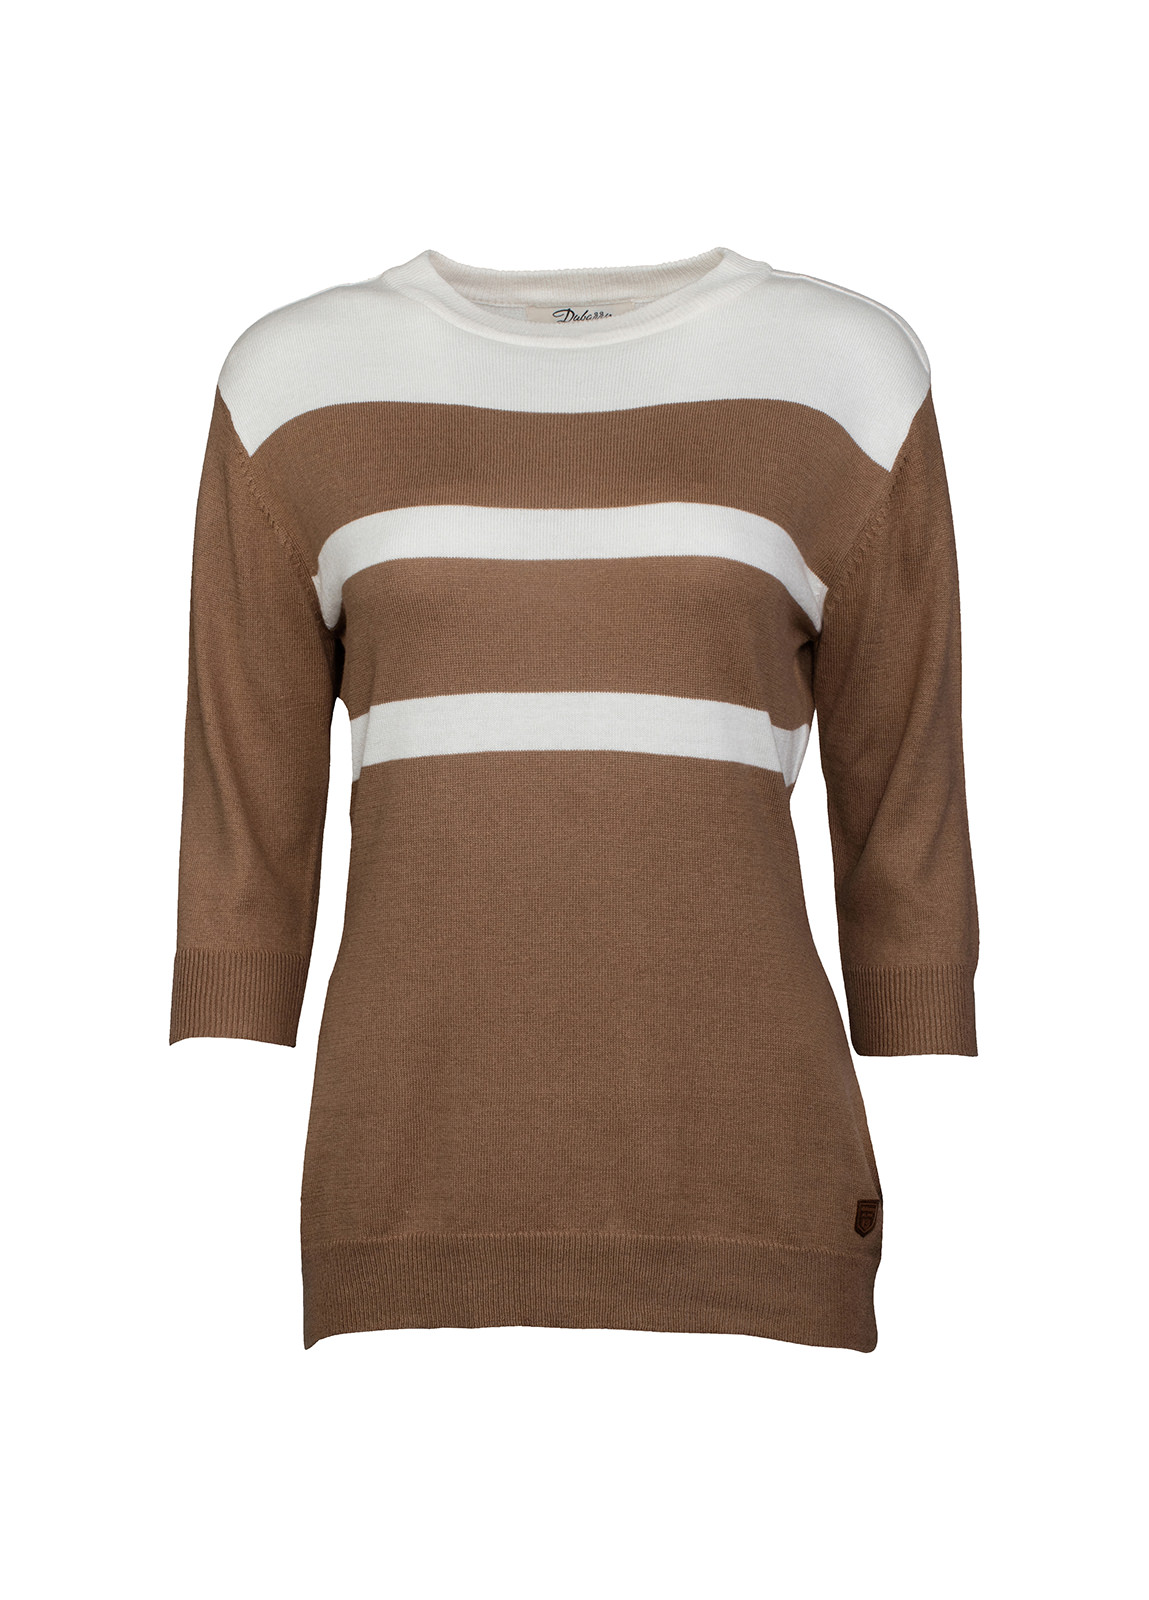 Dubarry_Morrison Ladies Sweater - Cafe_Image_2